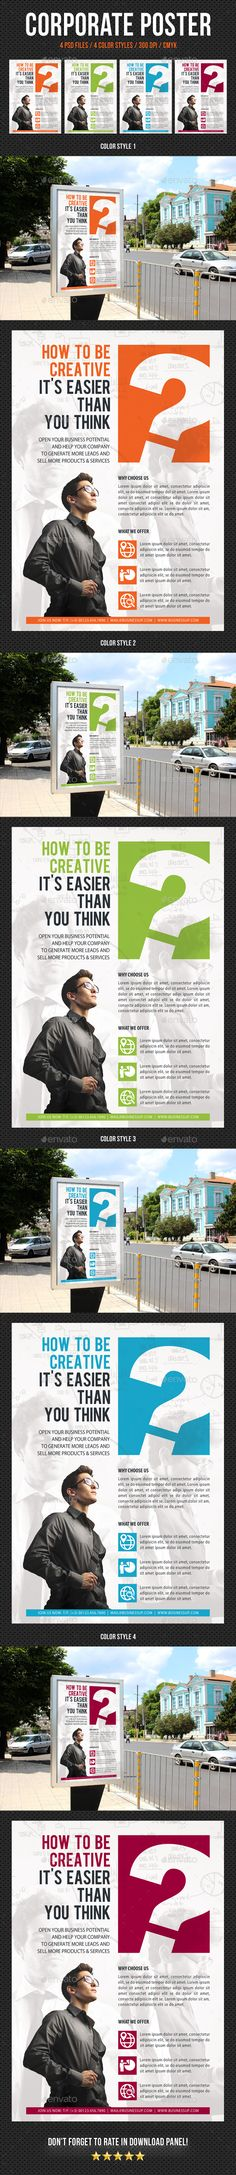 Corporate business poster template v16 business poster corporate corporate business poster template v09 accmission Choice Image